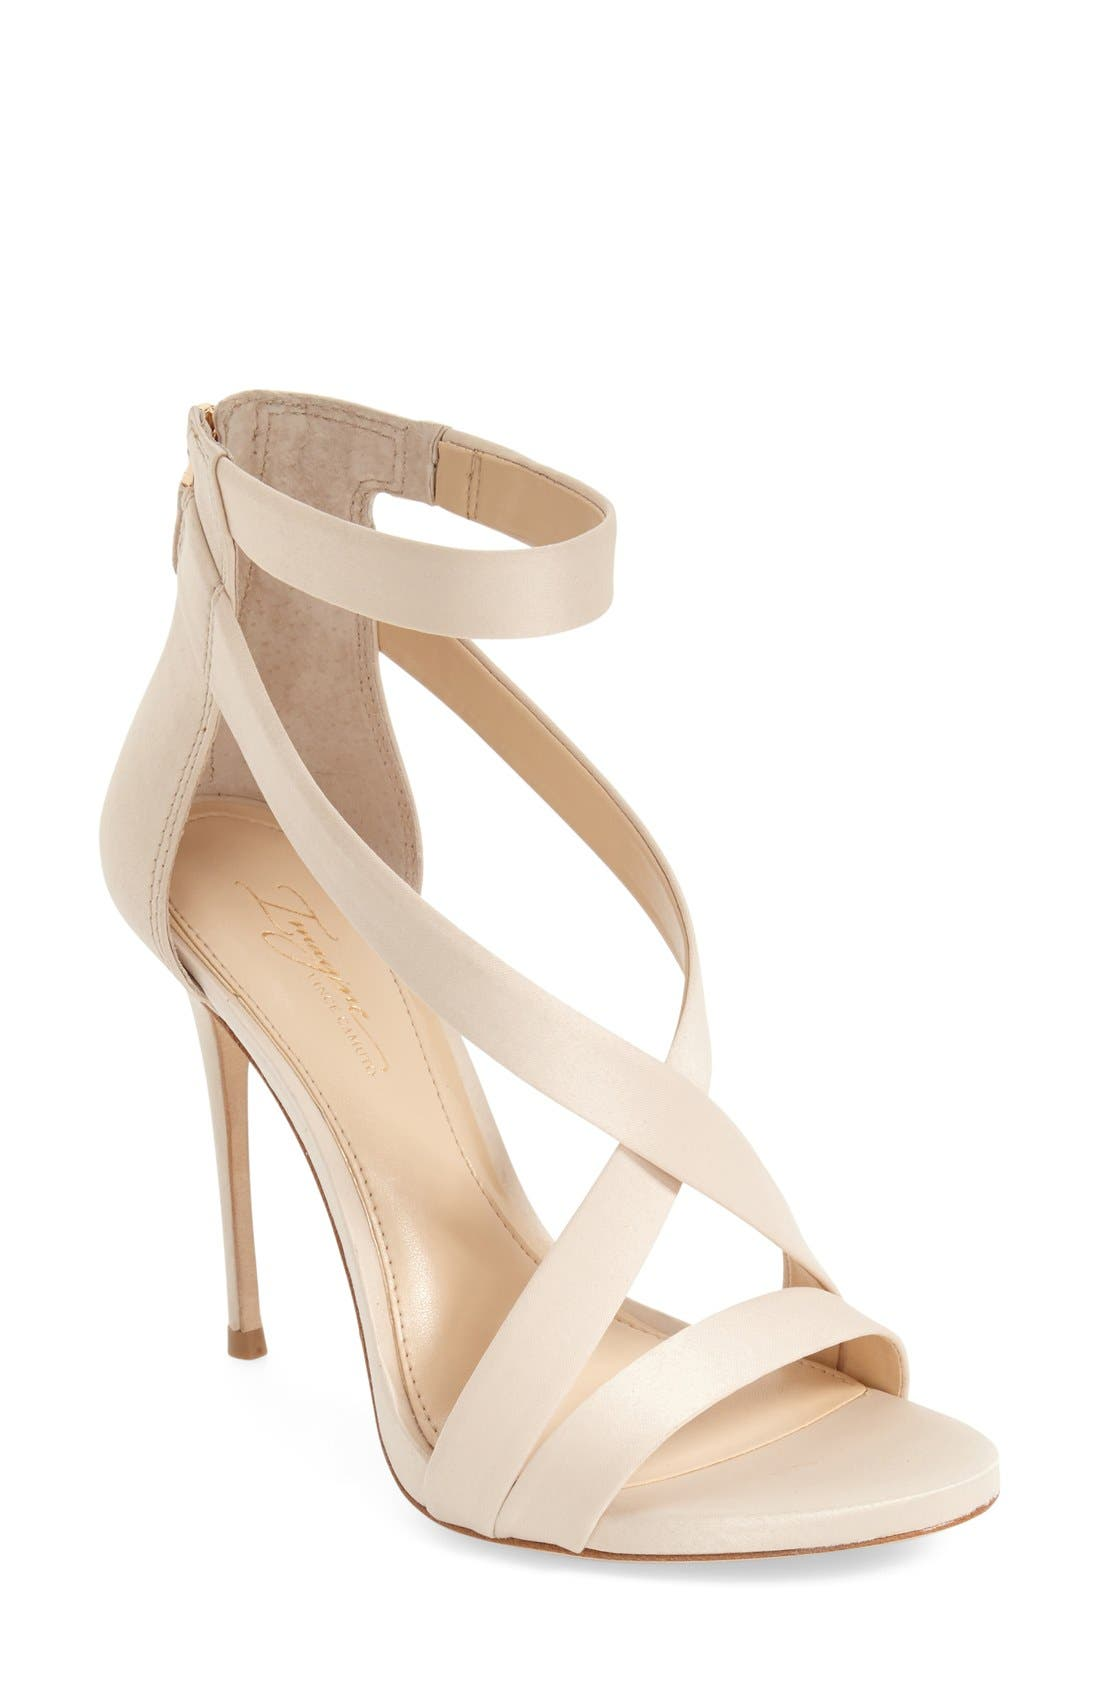 IMAGINE BY VINCE CAMUTO, Imagine Vince Camuto 'Devin' Sandal, Main thumbnail 1, color, LIGHT SAND